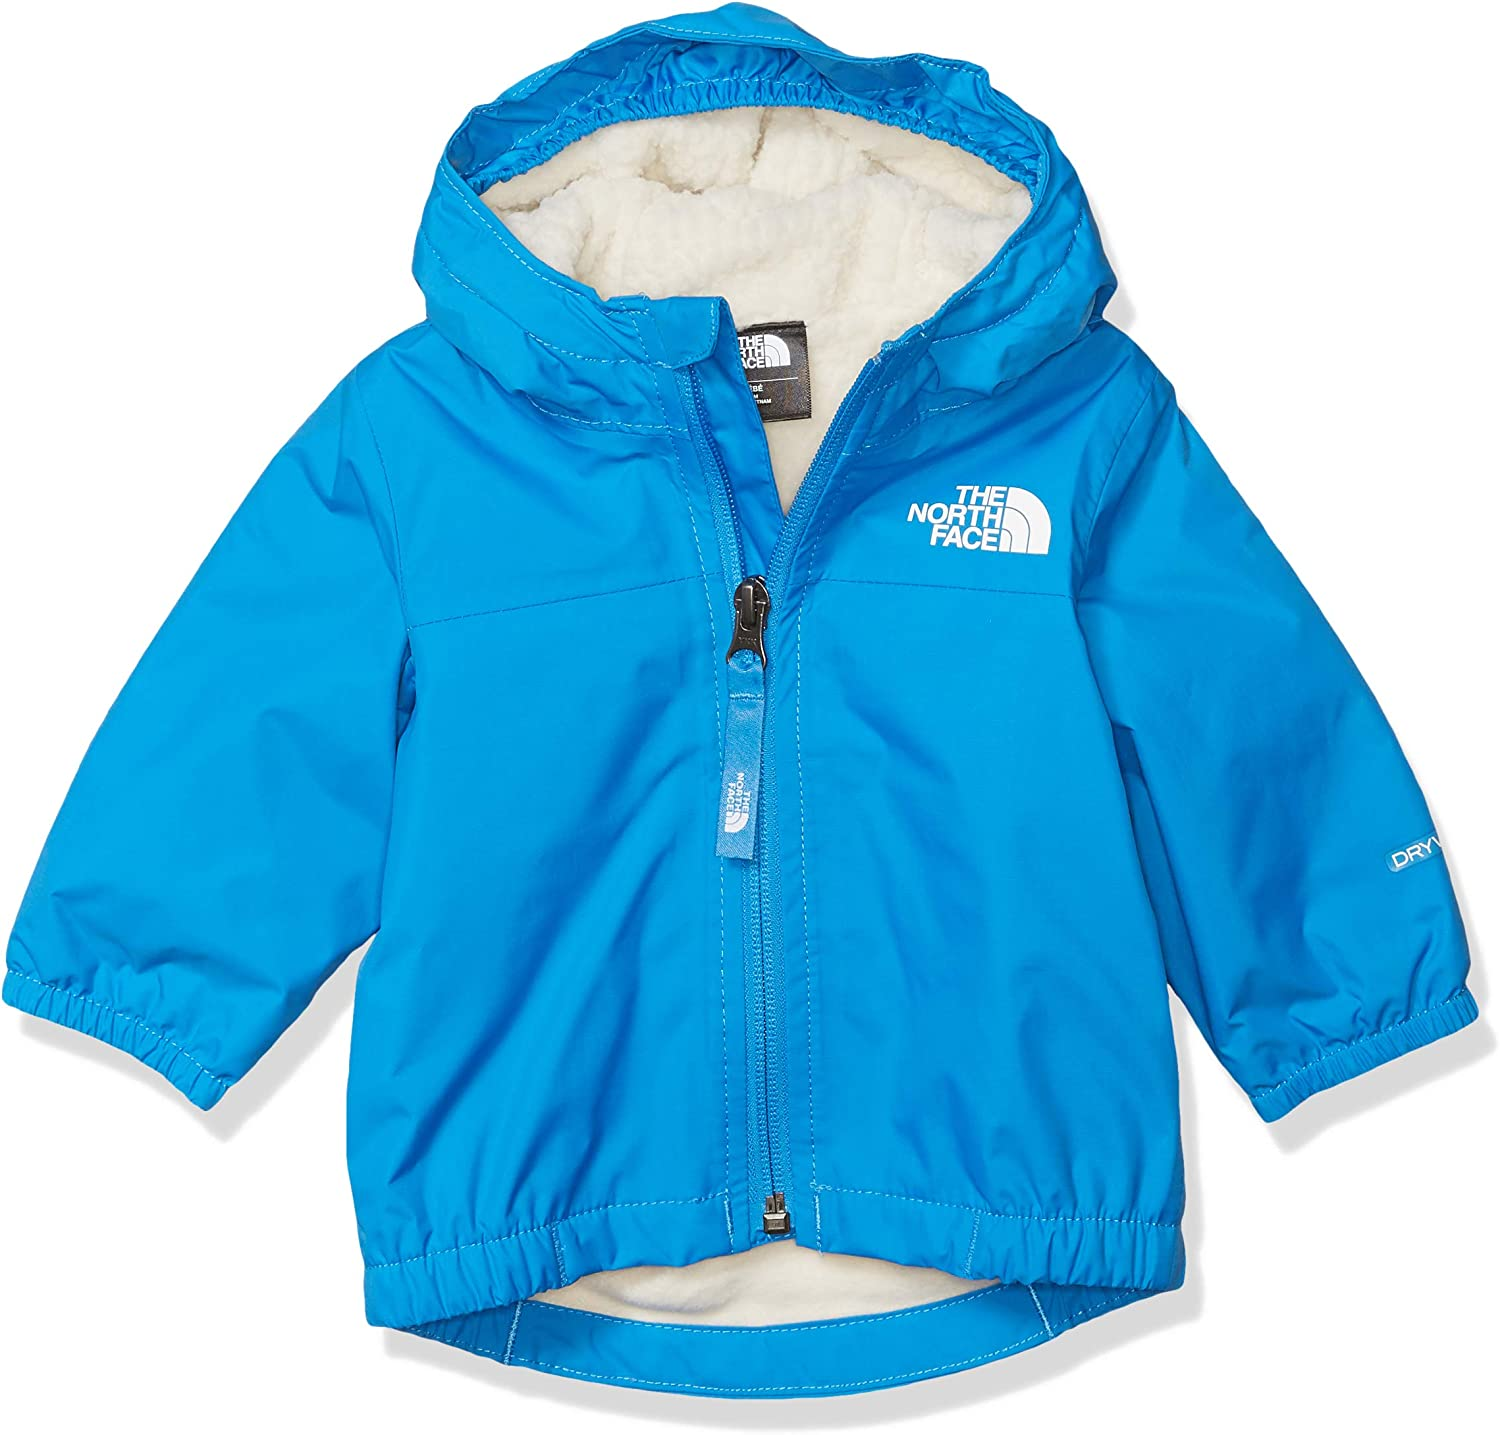 The North Face Infant Warm Storm Rain Insulated Jacket